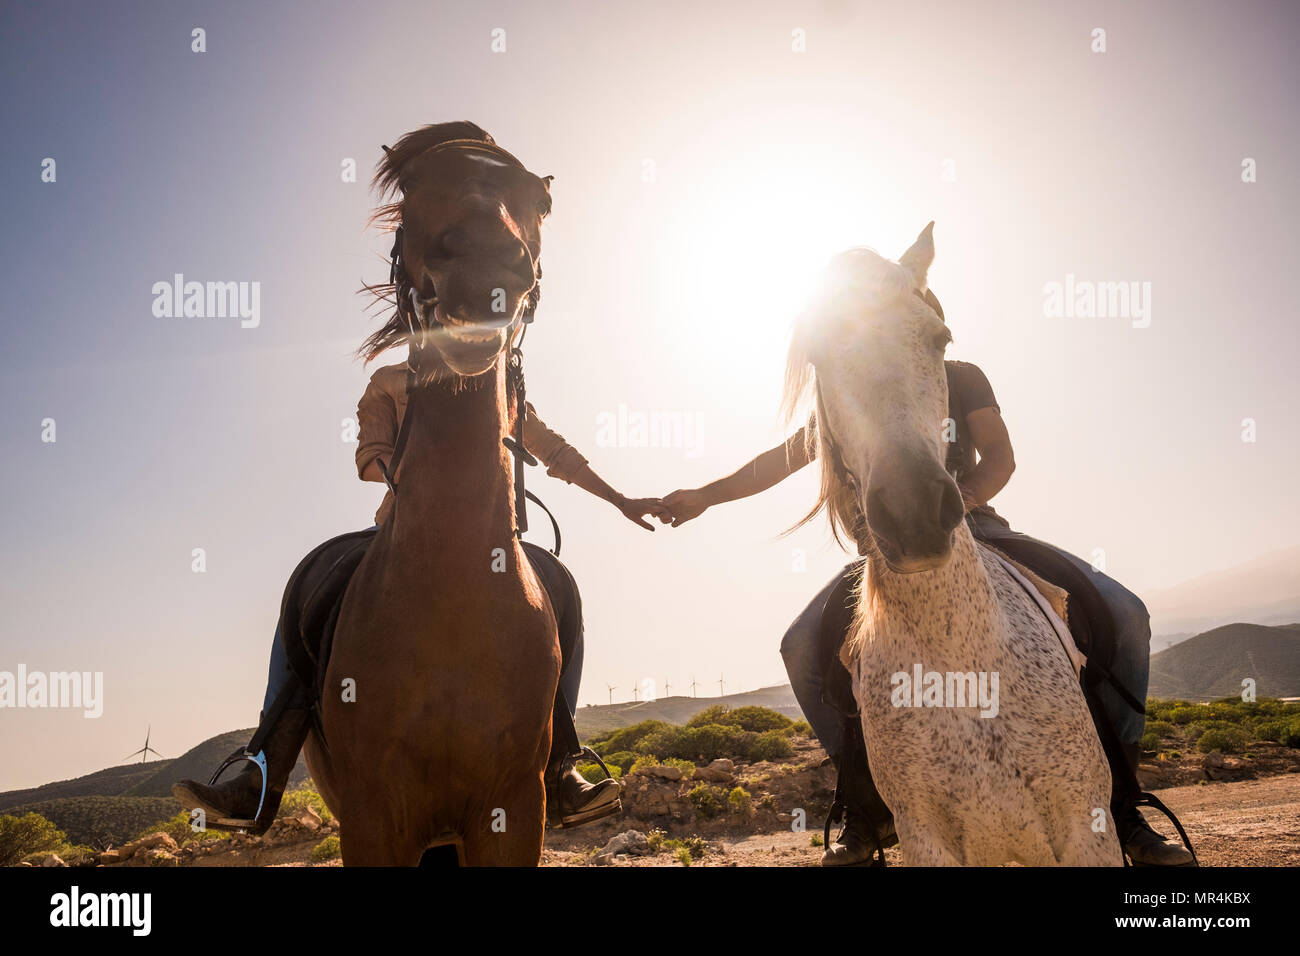 hands touching with love but horse face bomb the pictures for a final funny image with horse smiling. backlight and love concept in the nature leisure - Stock Image